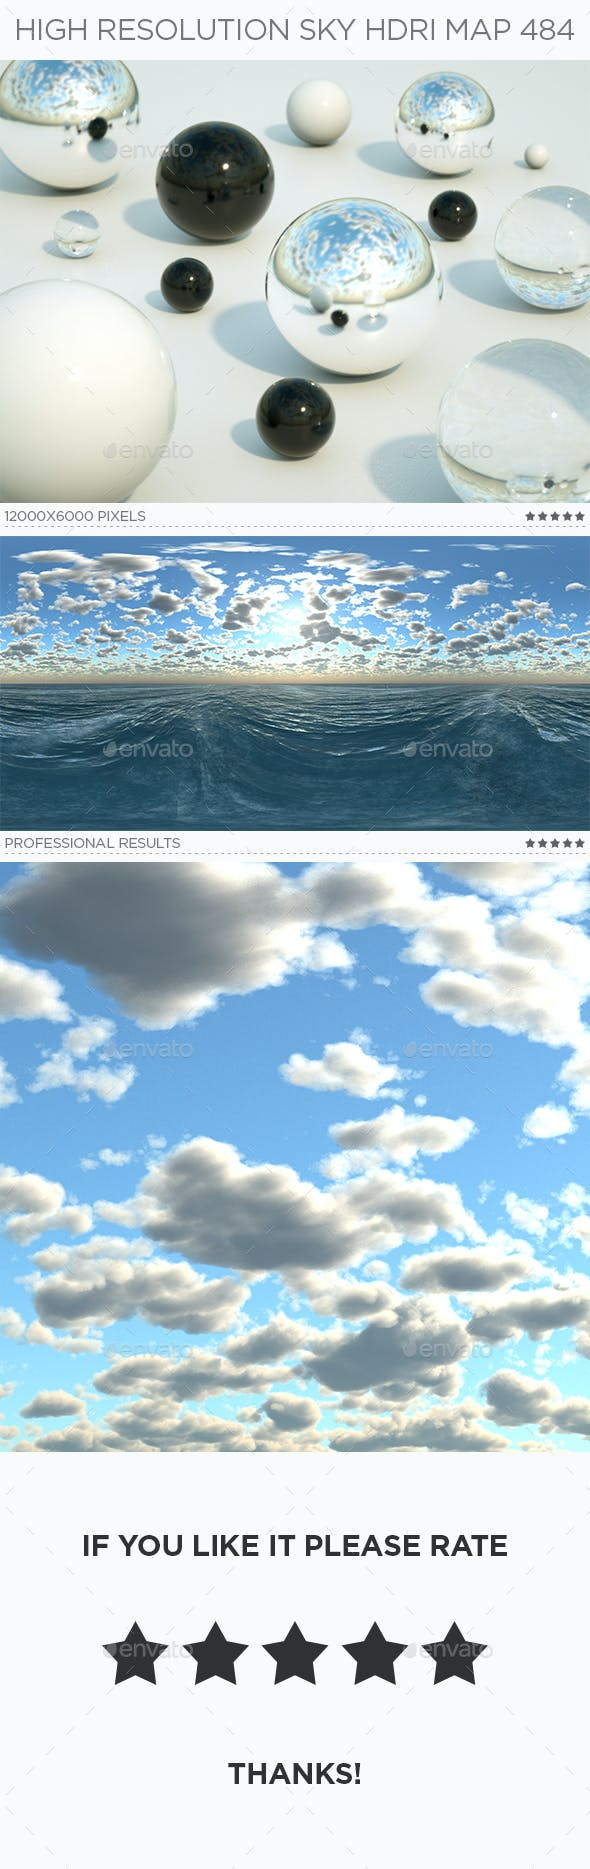 High Resolution Sky HDRi Map 484 - 3DOcean Item for Sale